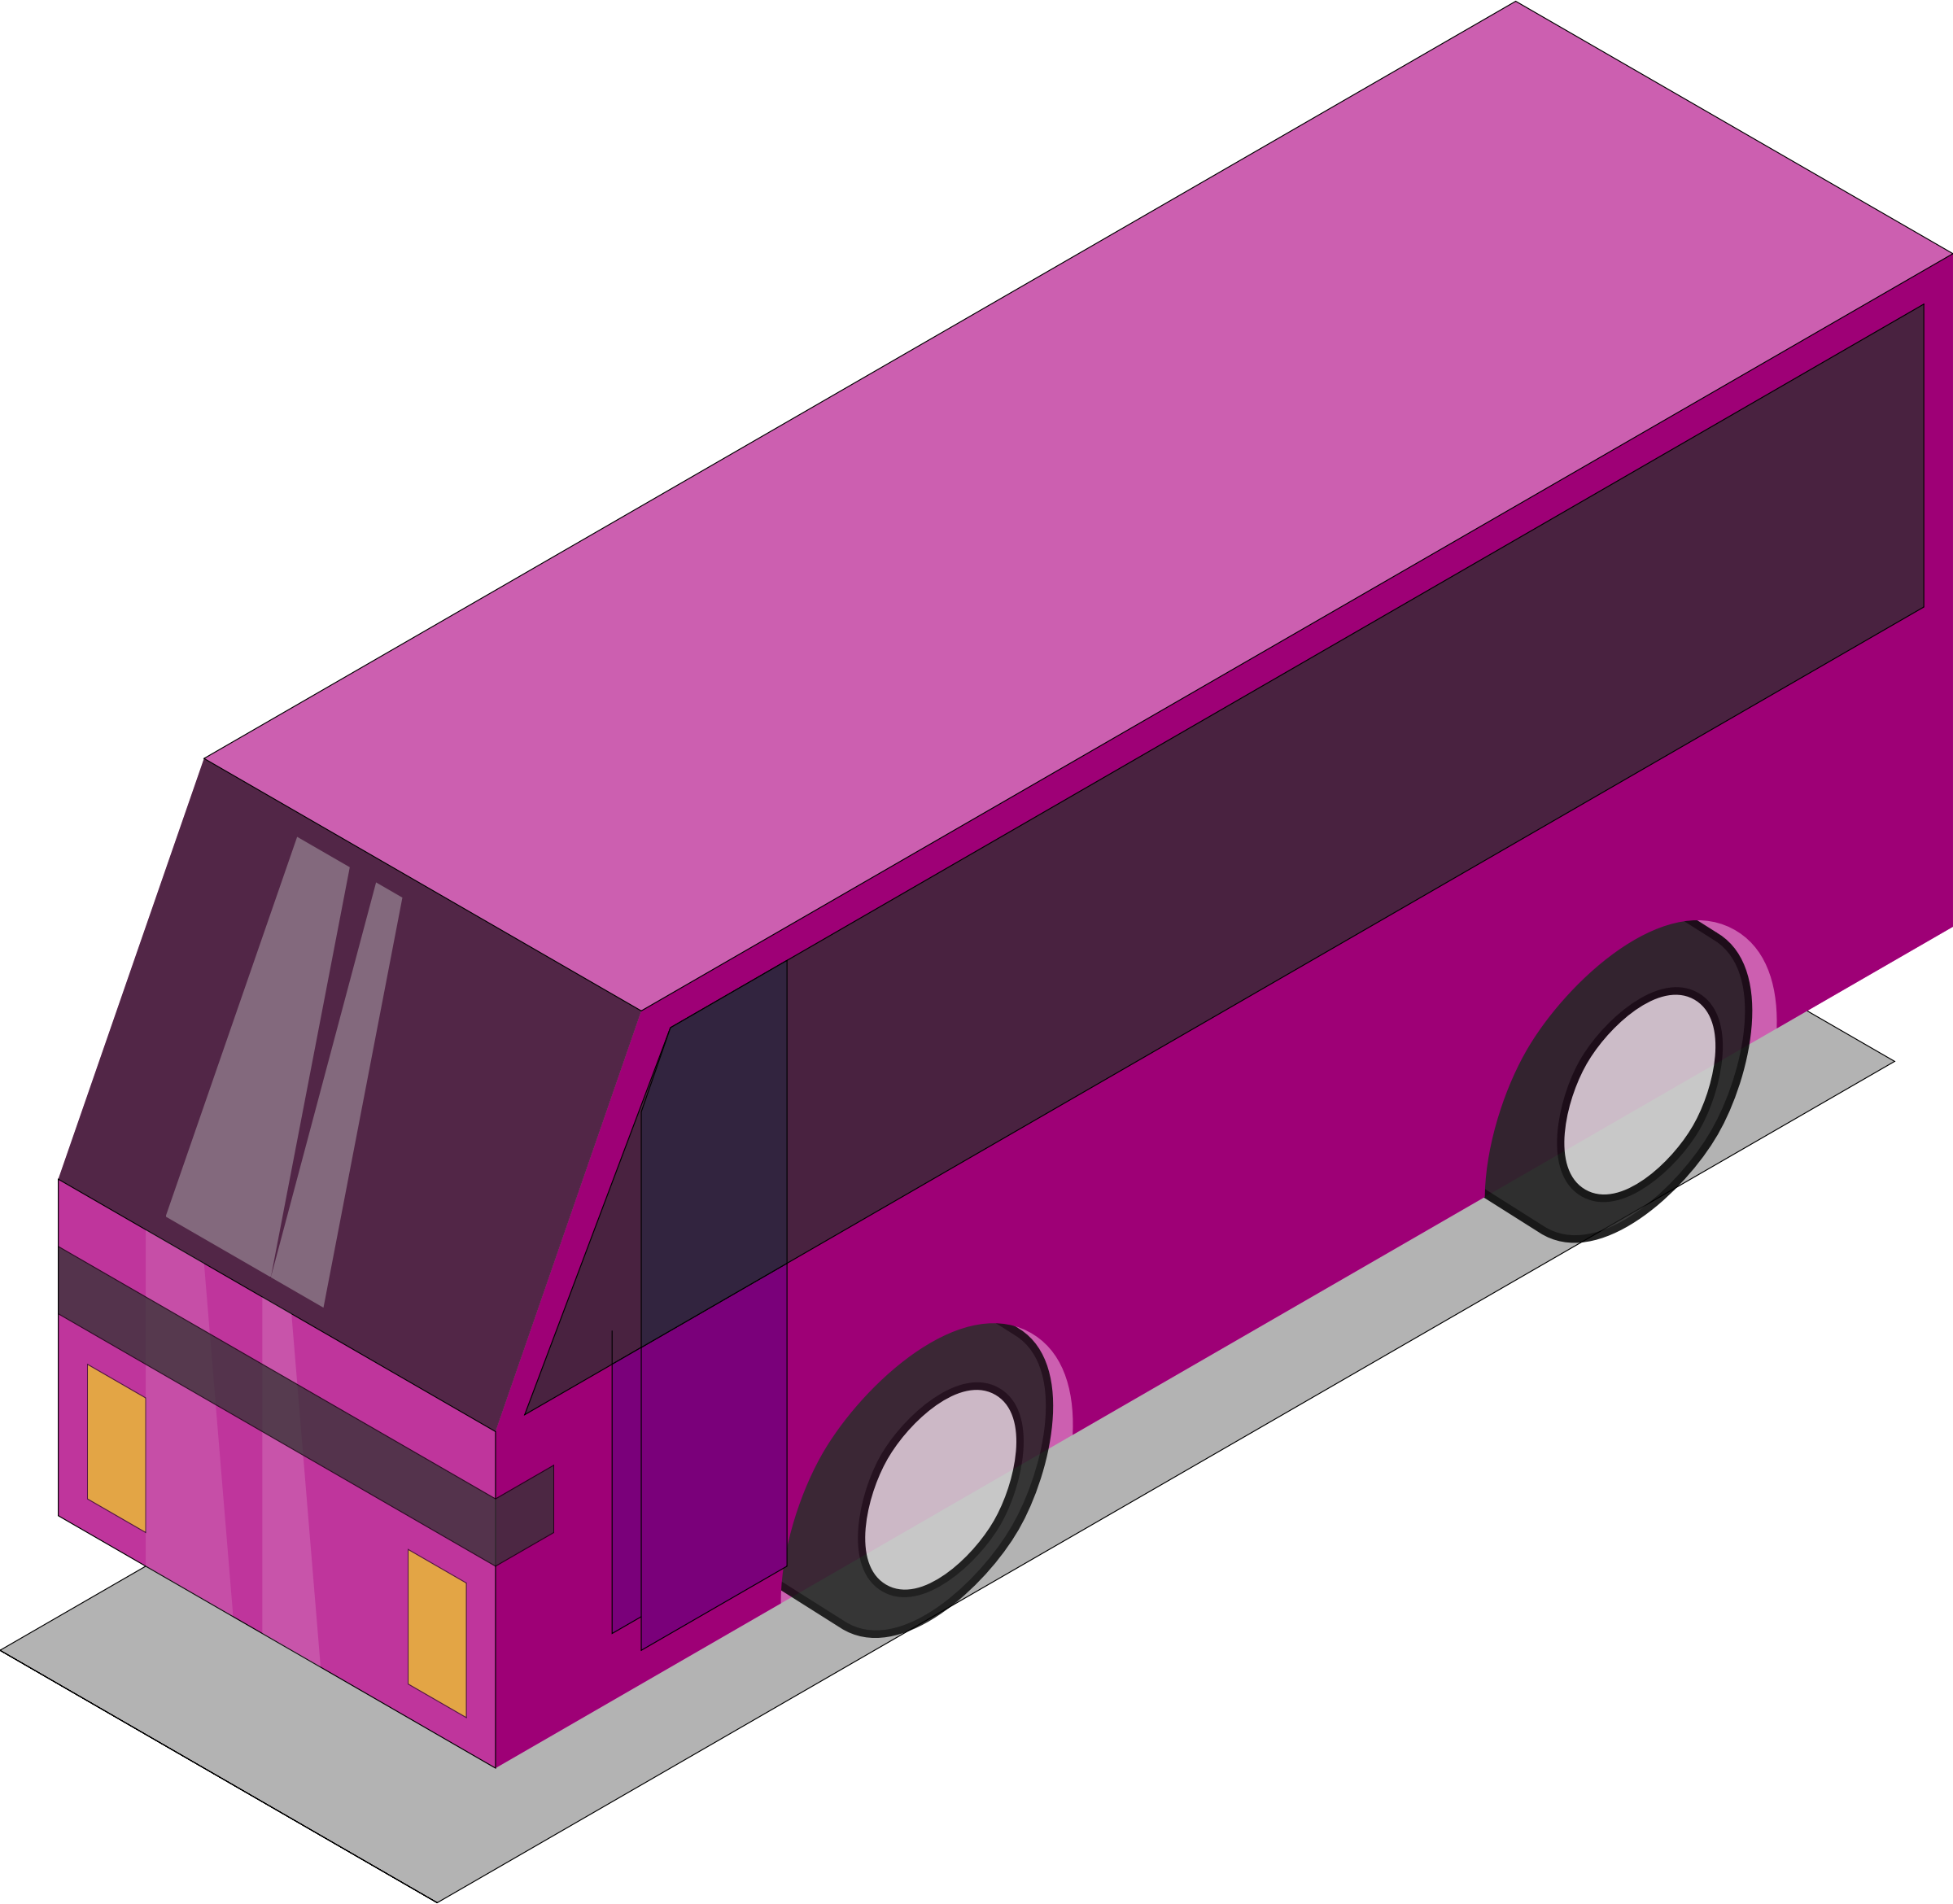 Pink bus by Astro